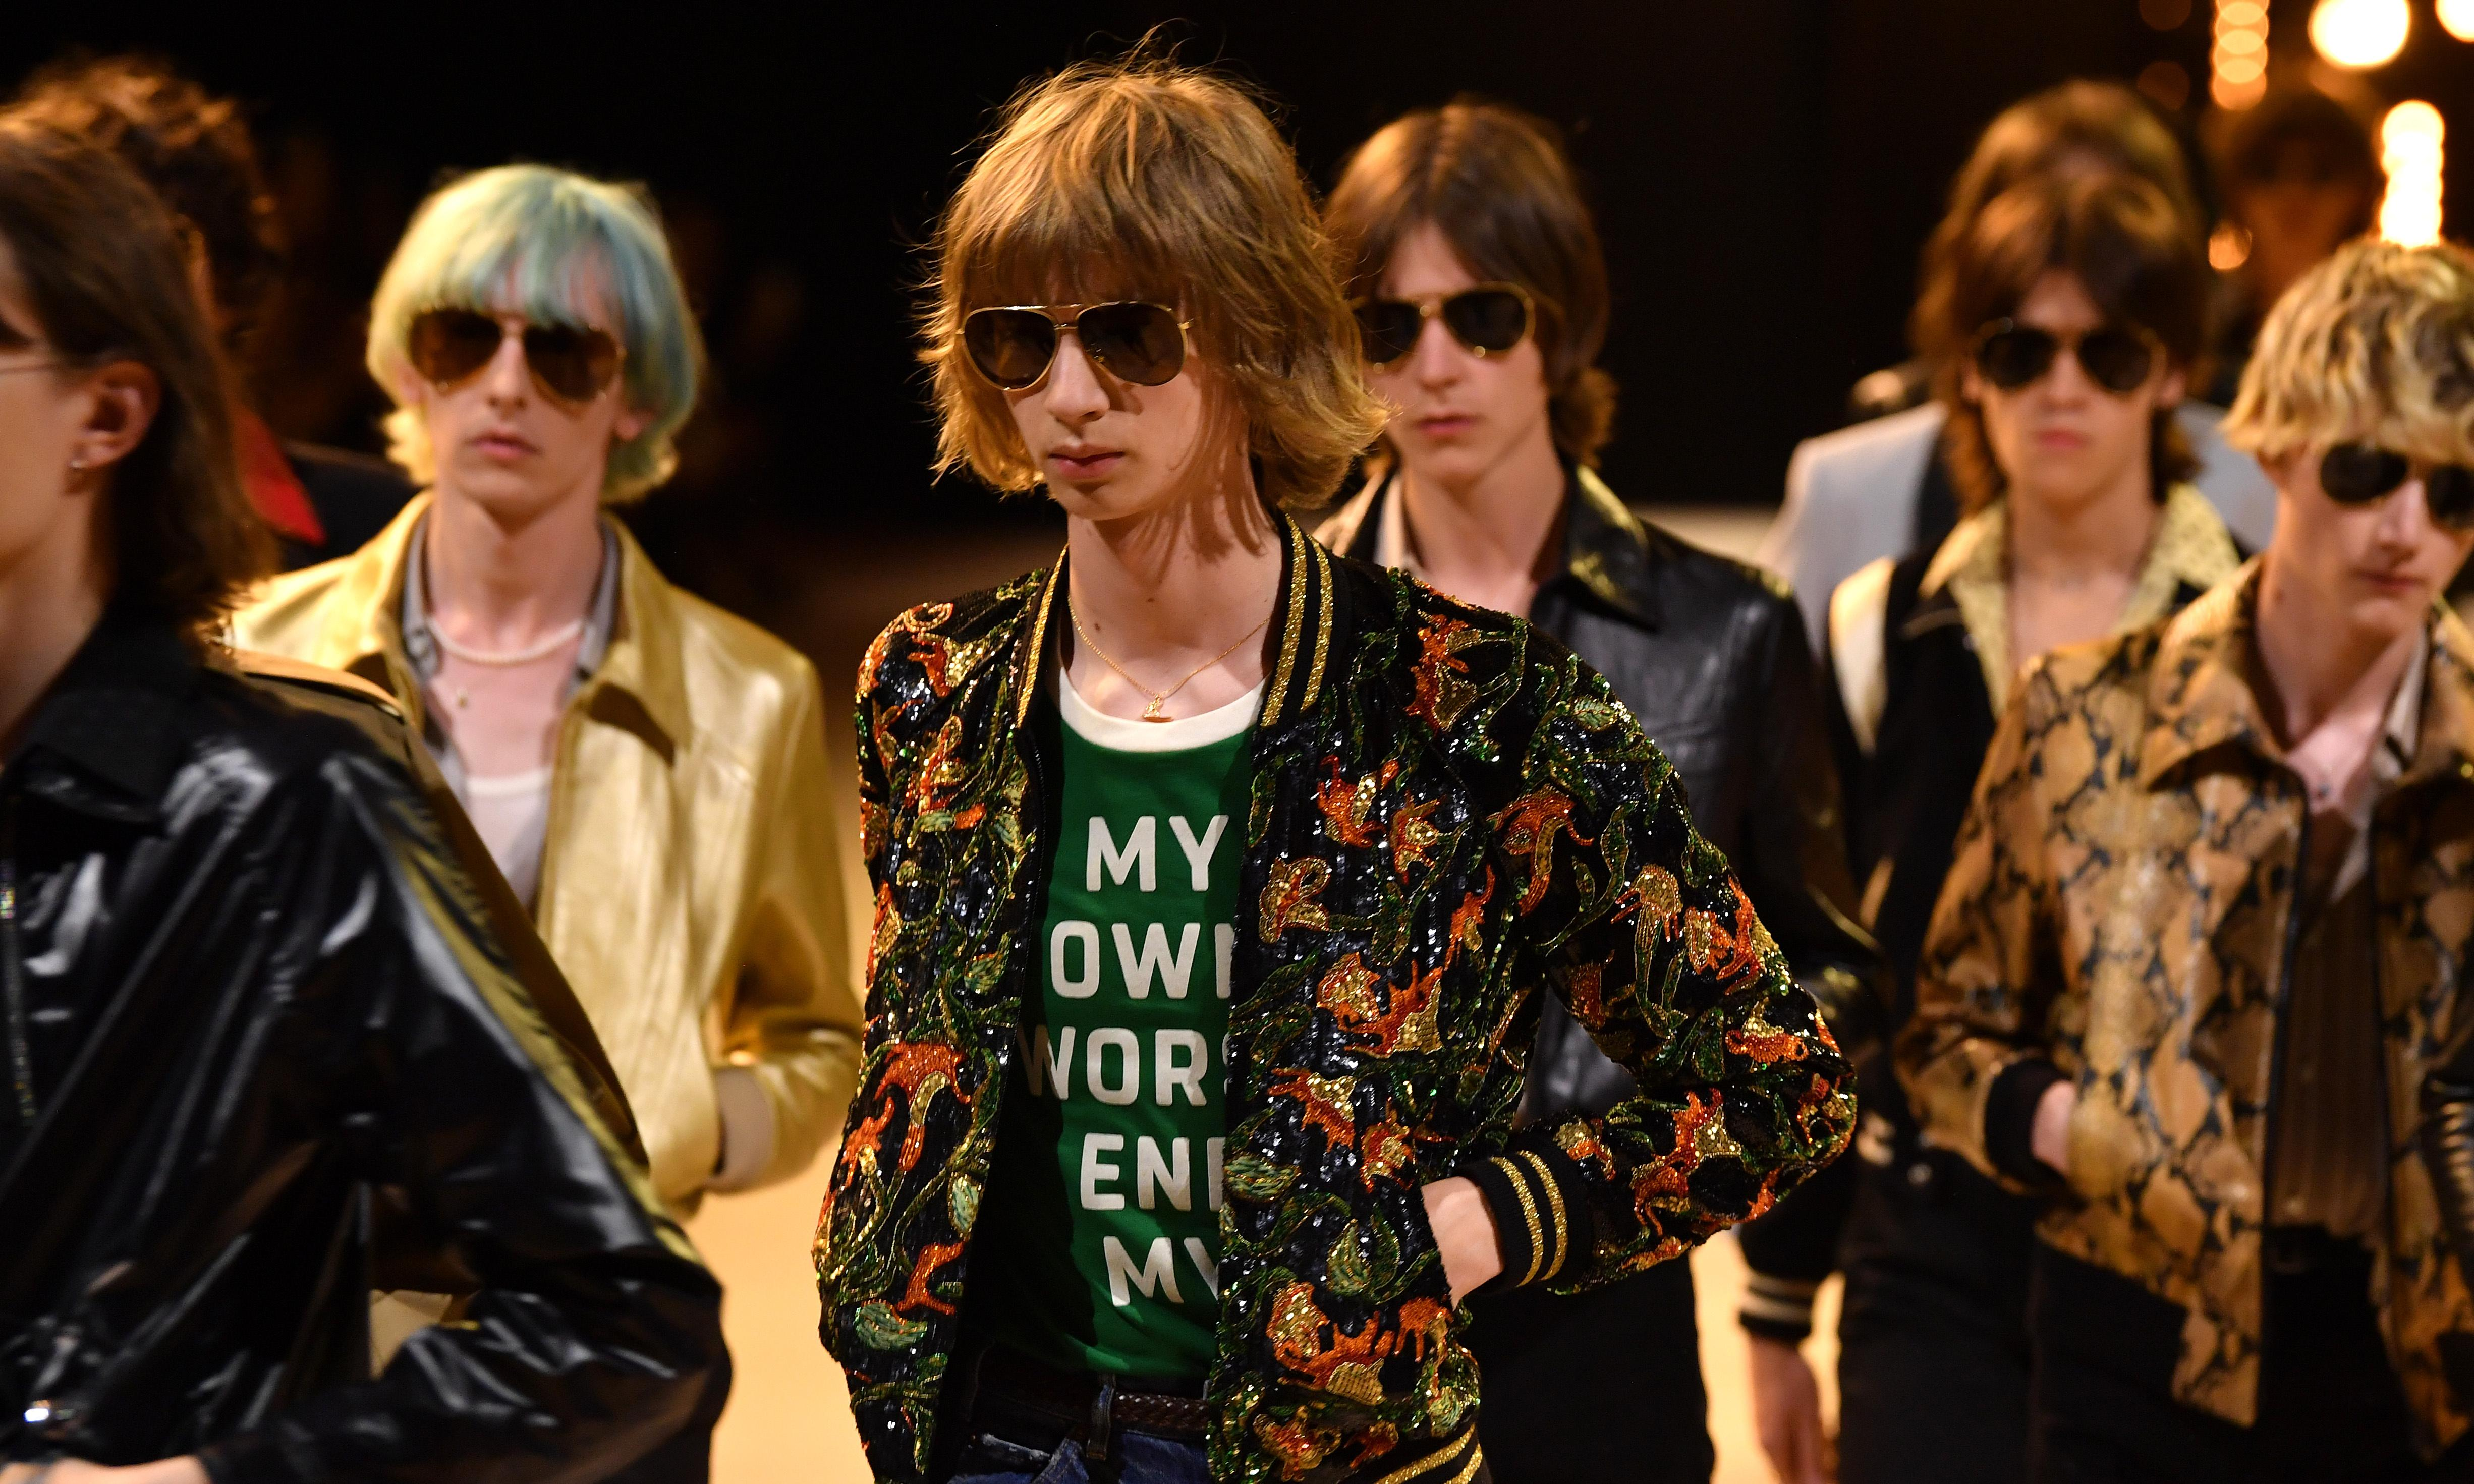 Hedi Slimane wows Paris fashion week with 70s-inspired collection